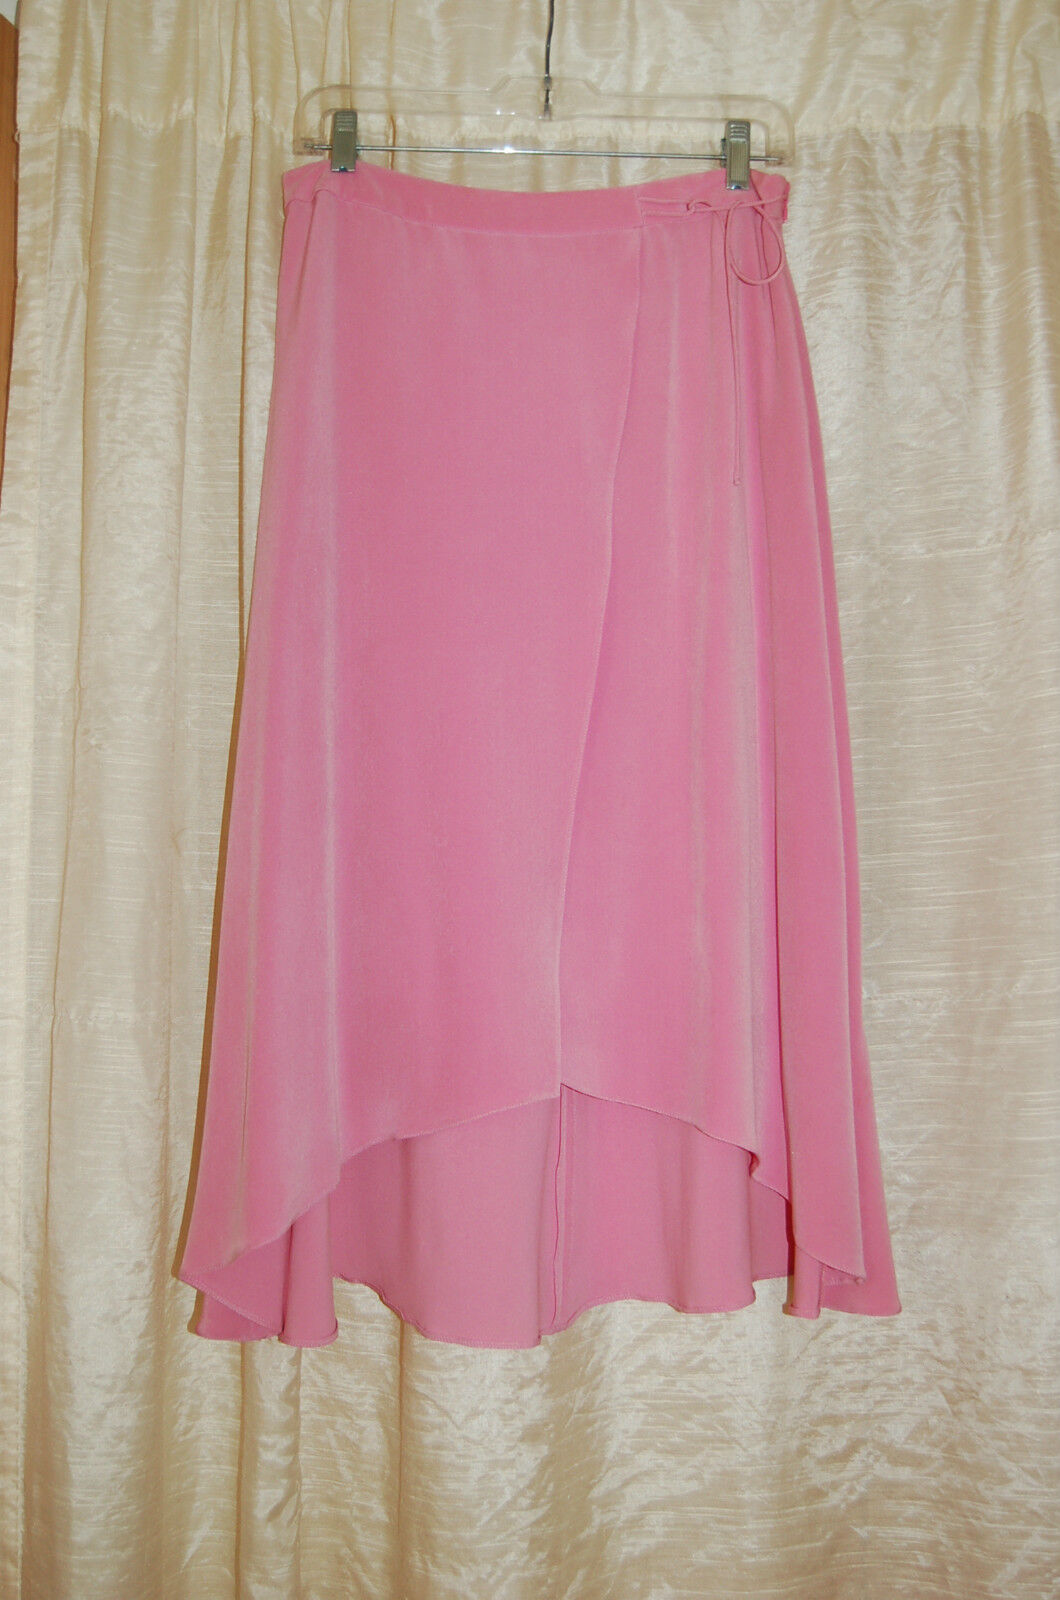 Giorgio Armani Pink Silk Asymmetrical Skirt Size 44 Made in